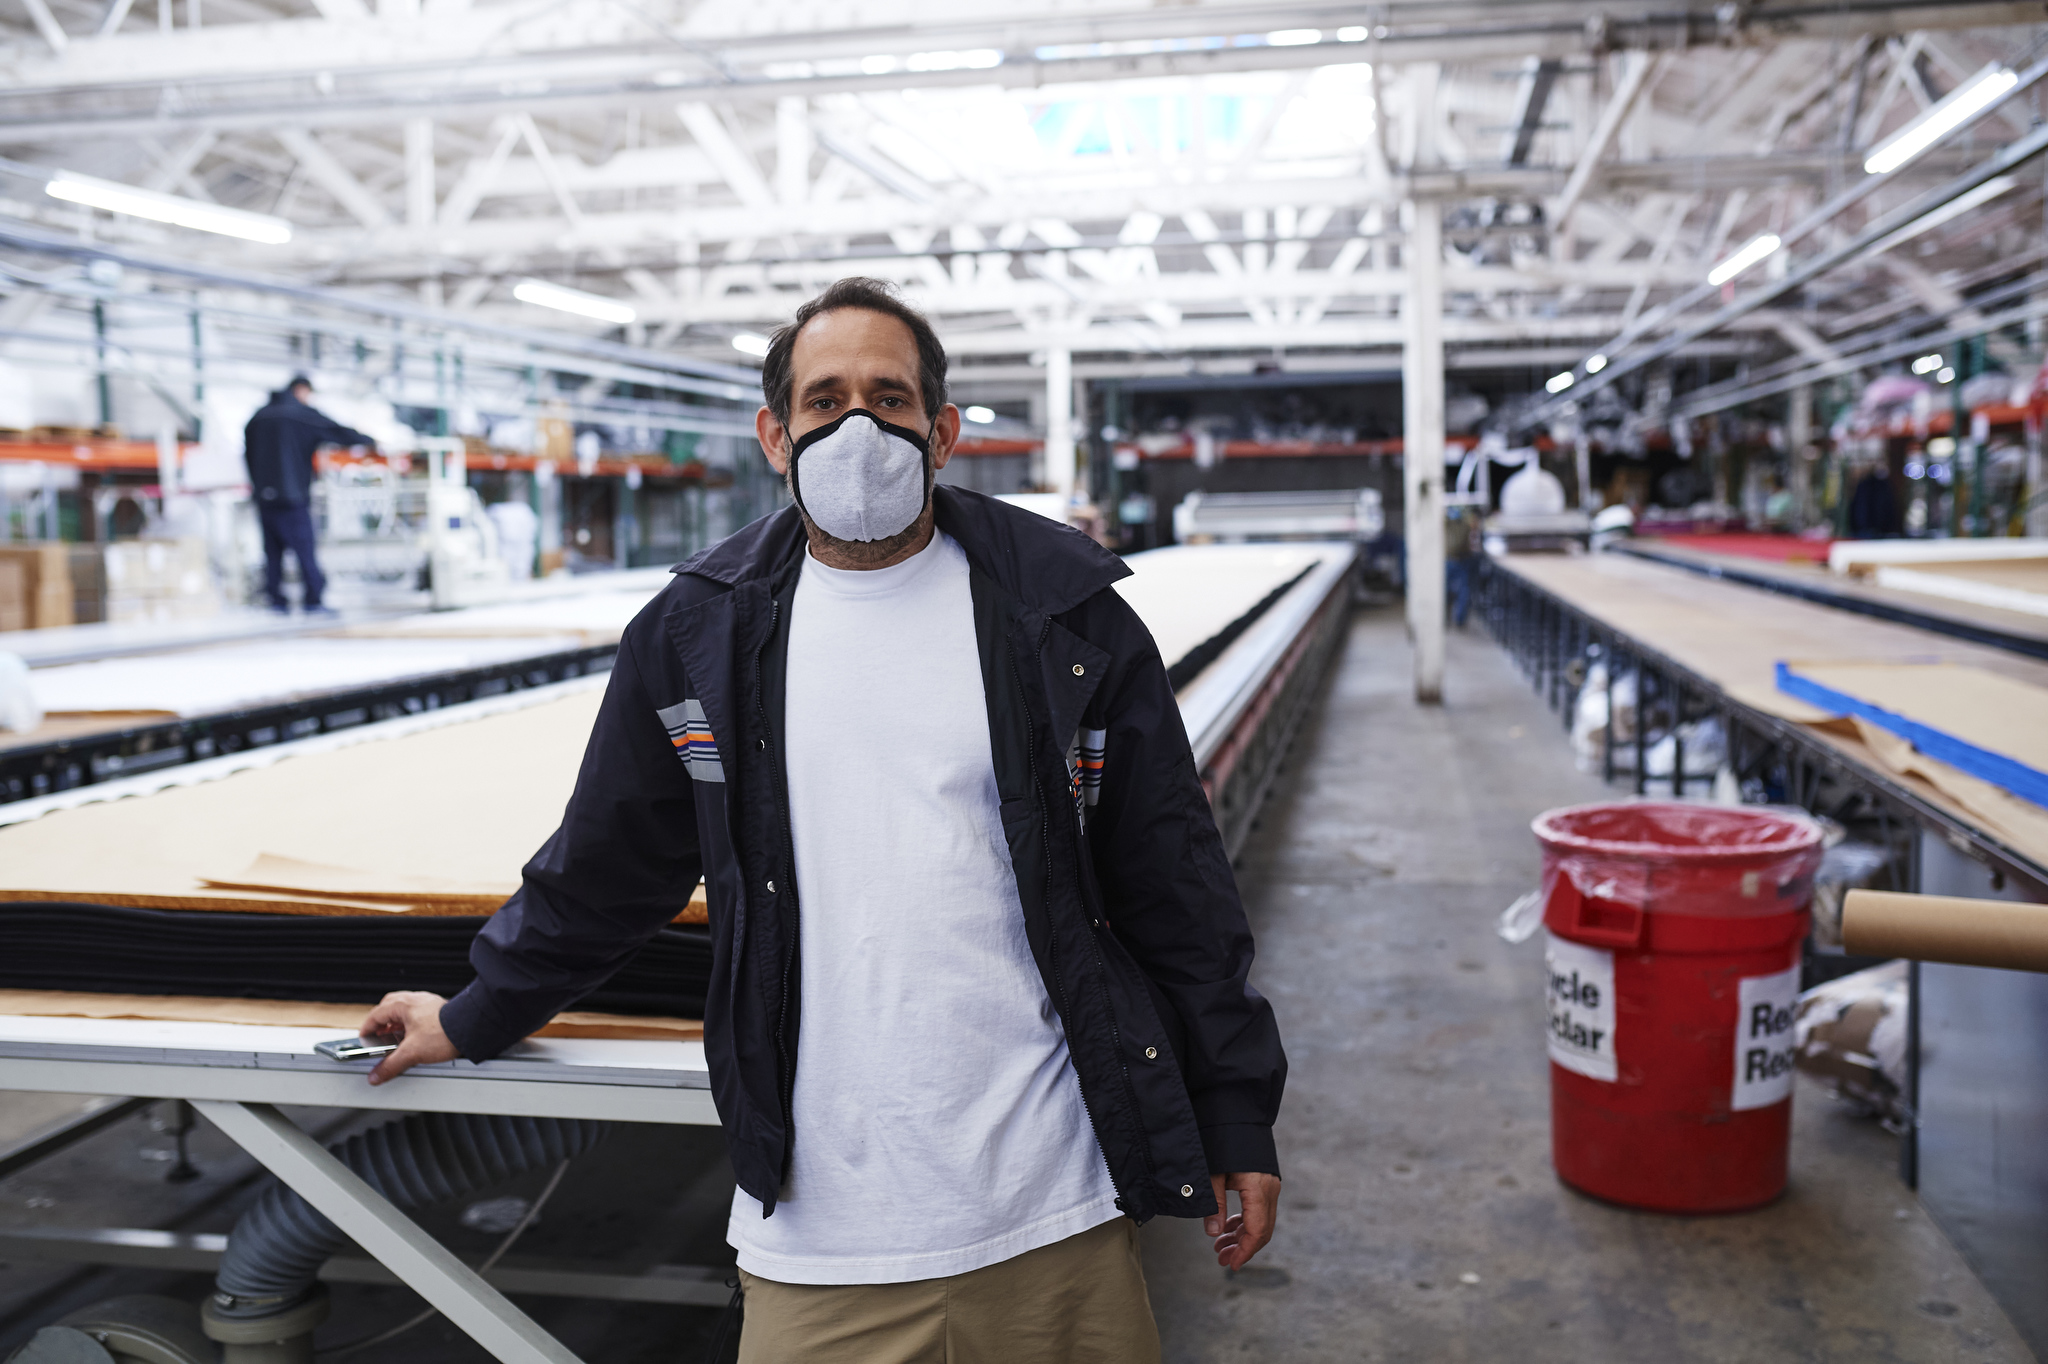 Dov Charney founded Los Angeles Apparel in 2016, a vertically-integrated brand follow-up to his previous venture, American Apparel.